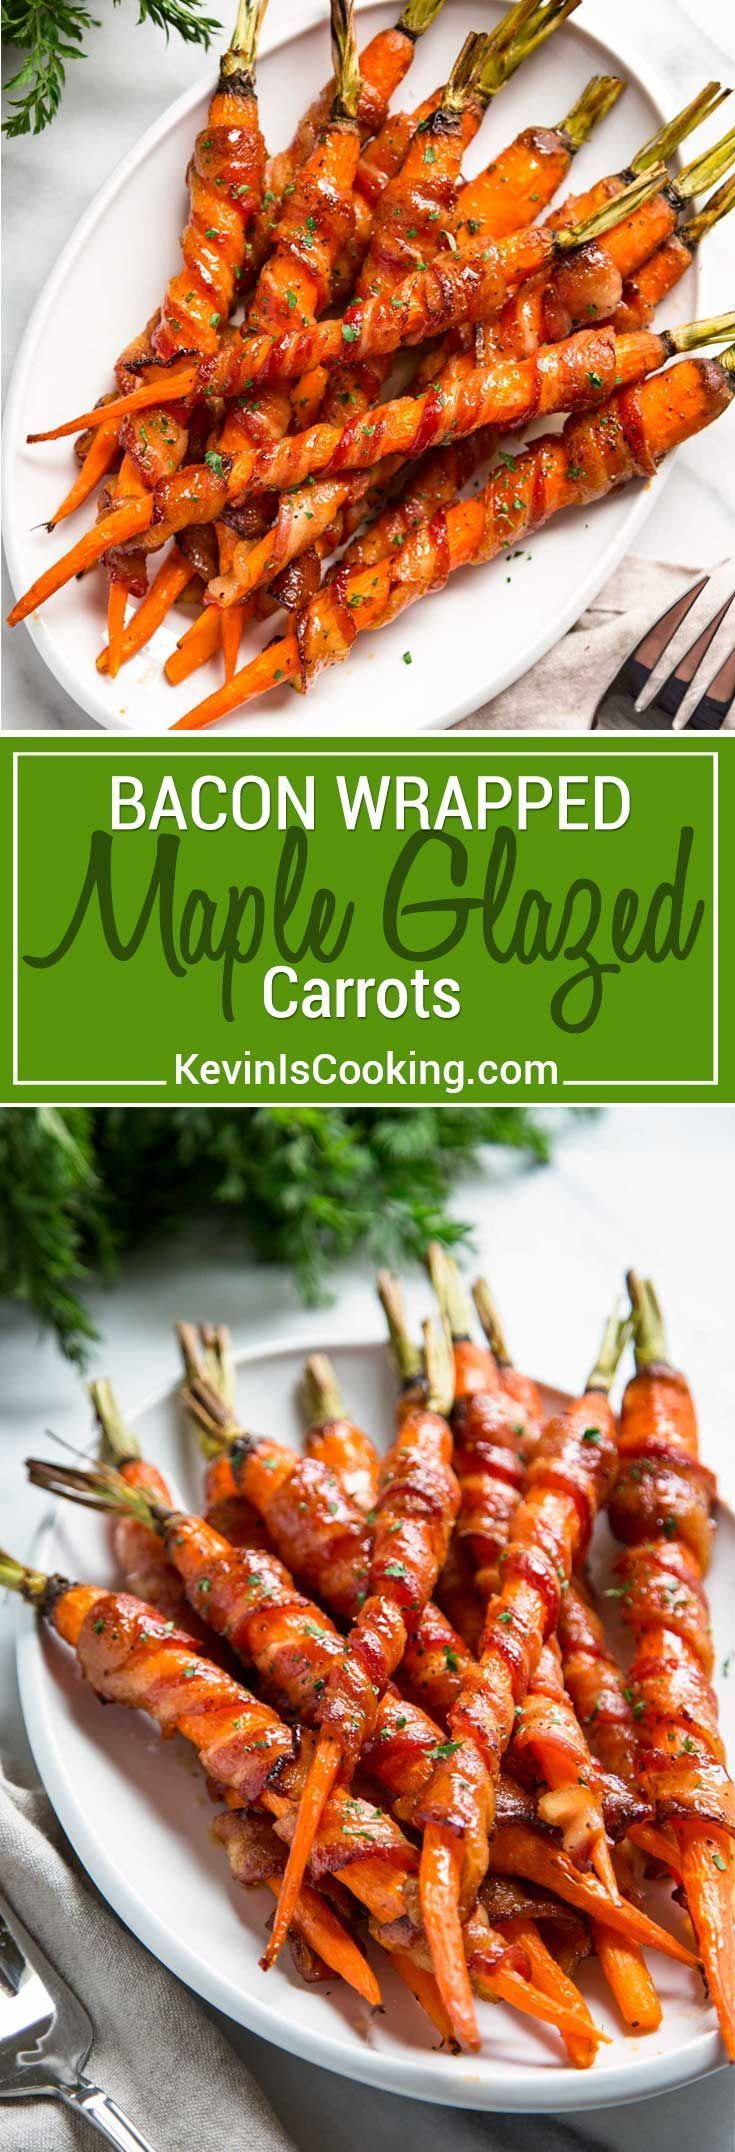 These Bacon Wrapped Carrots get sprinkled with black pepper and roasted, then basted with a maple Sriracha sauce until crispy. So easy and good! via @keviniscooking #carrots #bacon